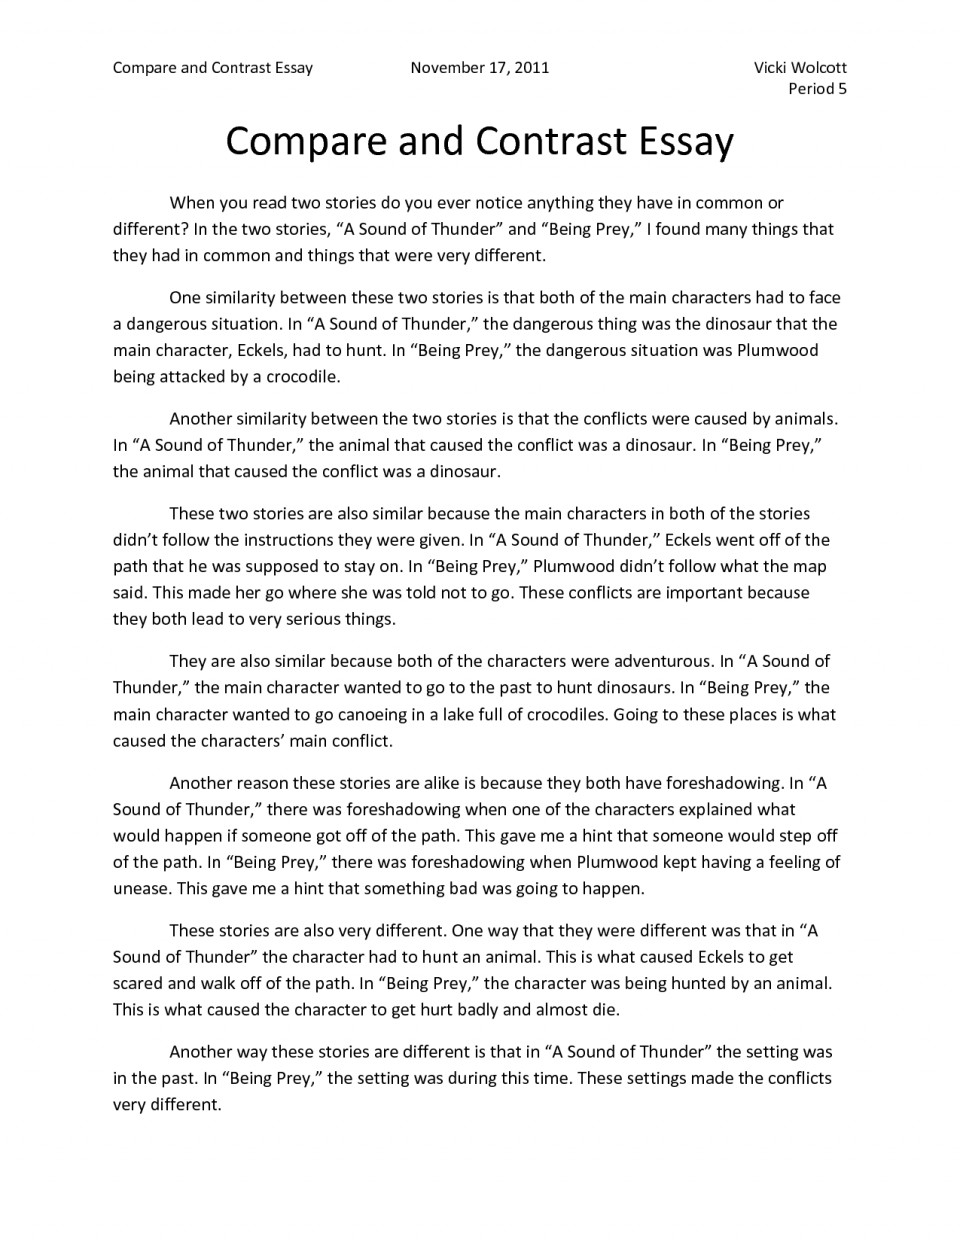 004 Essay Example Compare And Contrast Gallery Template Drawing Art Throughout College Examples Introduction Question Scholarship Free Edexcel Conclusion Frightening Prompts 5th Grade Rubric Ideas 12th 960